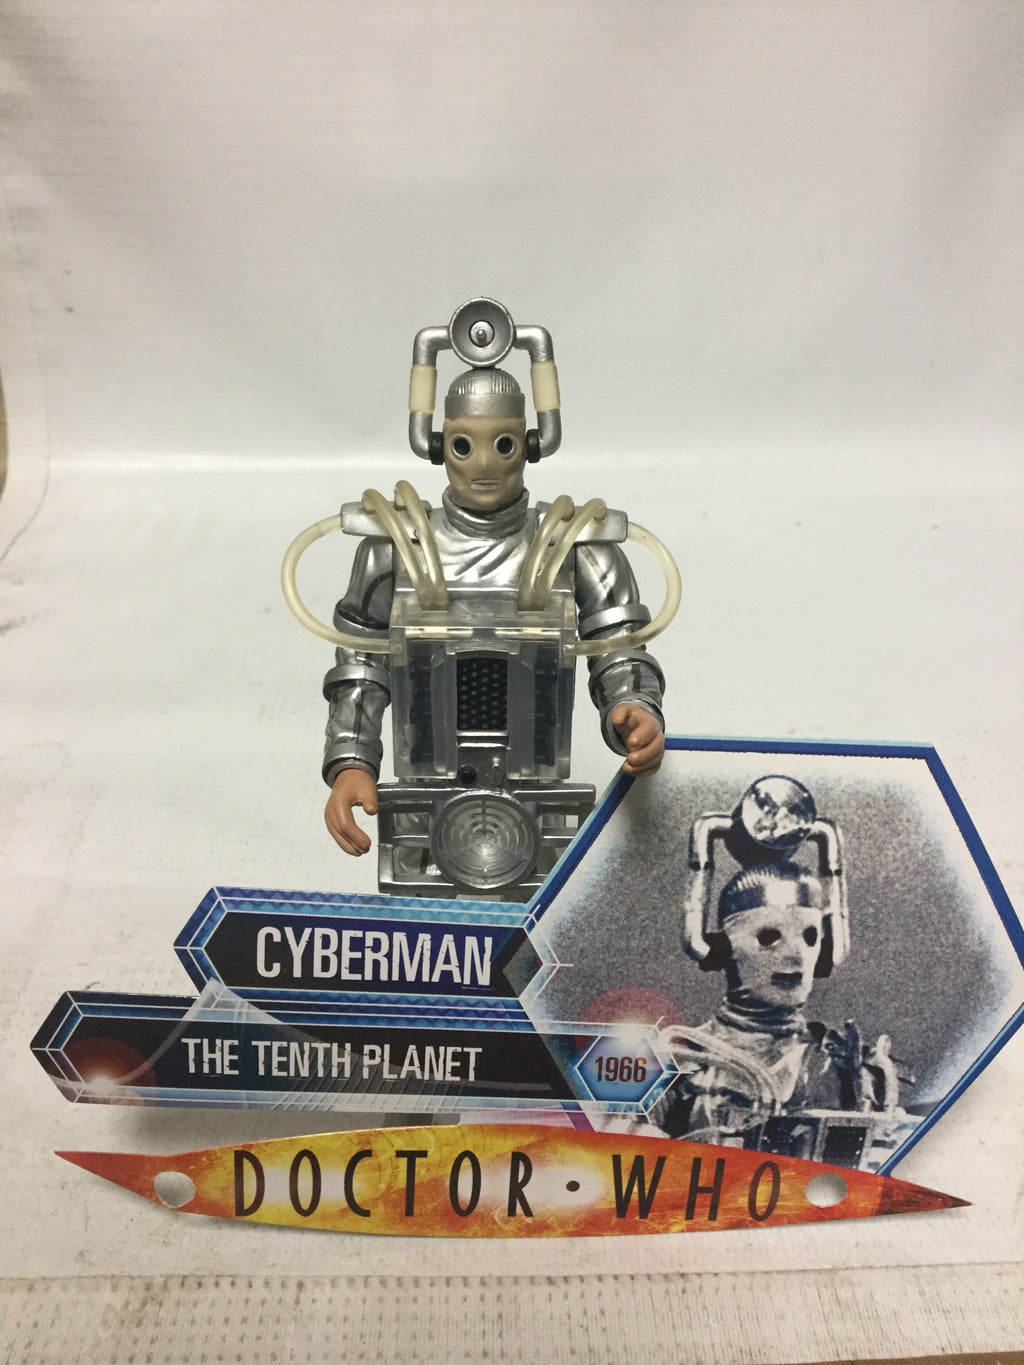 Doctor Who Cyberman The Tenth Planet 1966